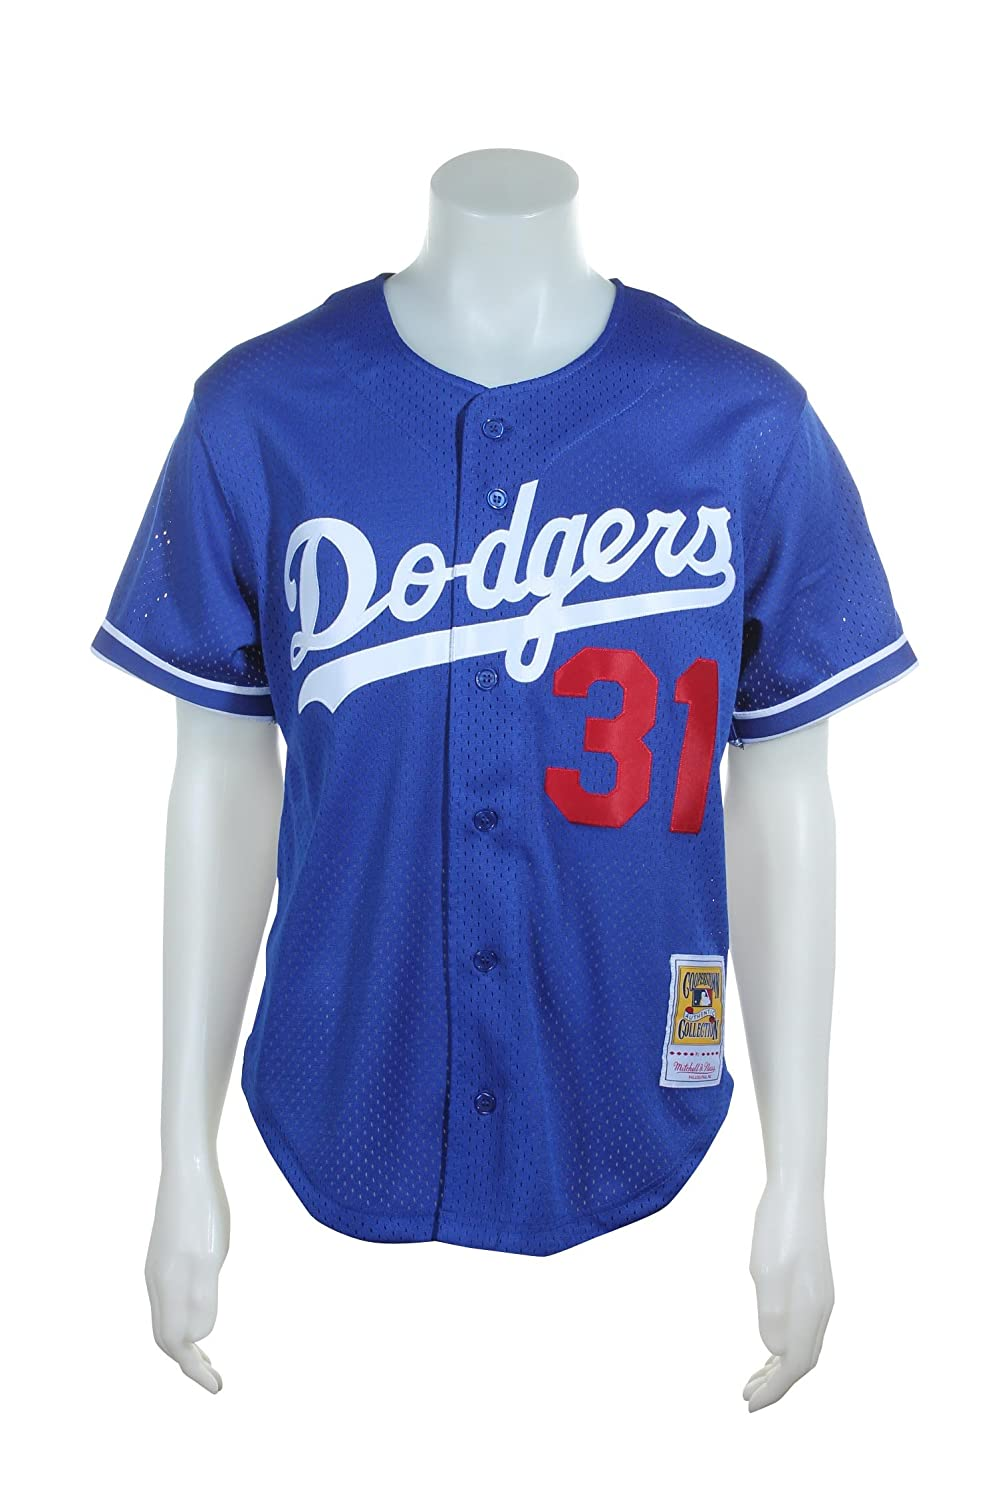 57cf8c3d3 Mitchell   Ness Mike Piazza Blue Los Angeles Dodgers Authentic Mesh Batting  Practice Jersey